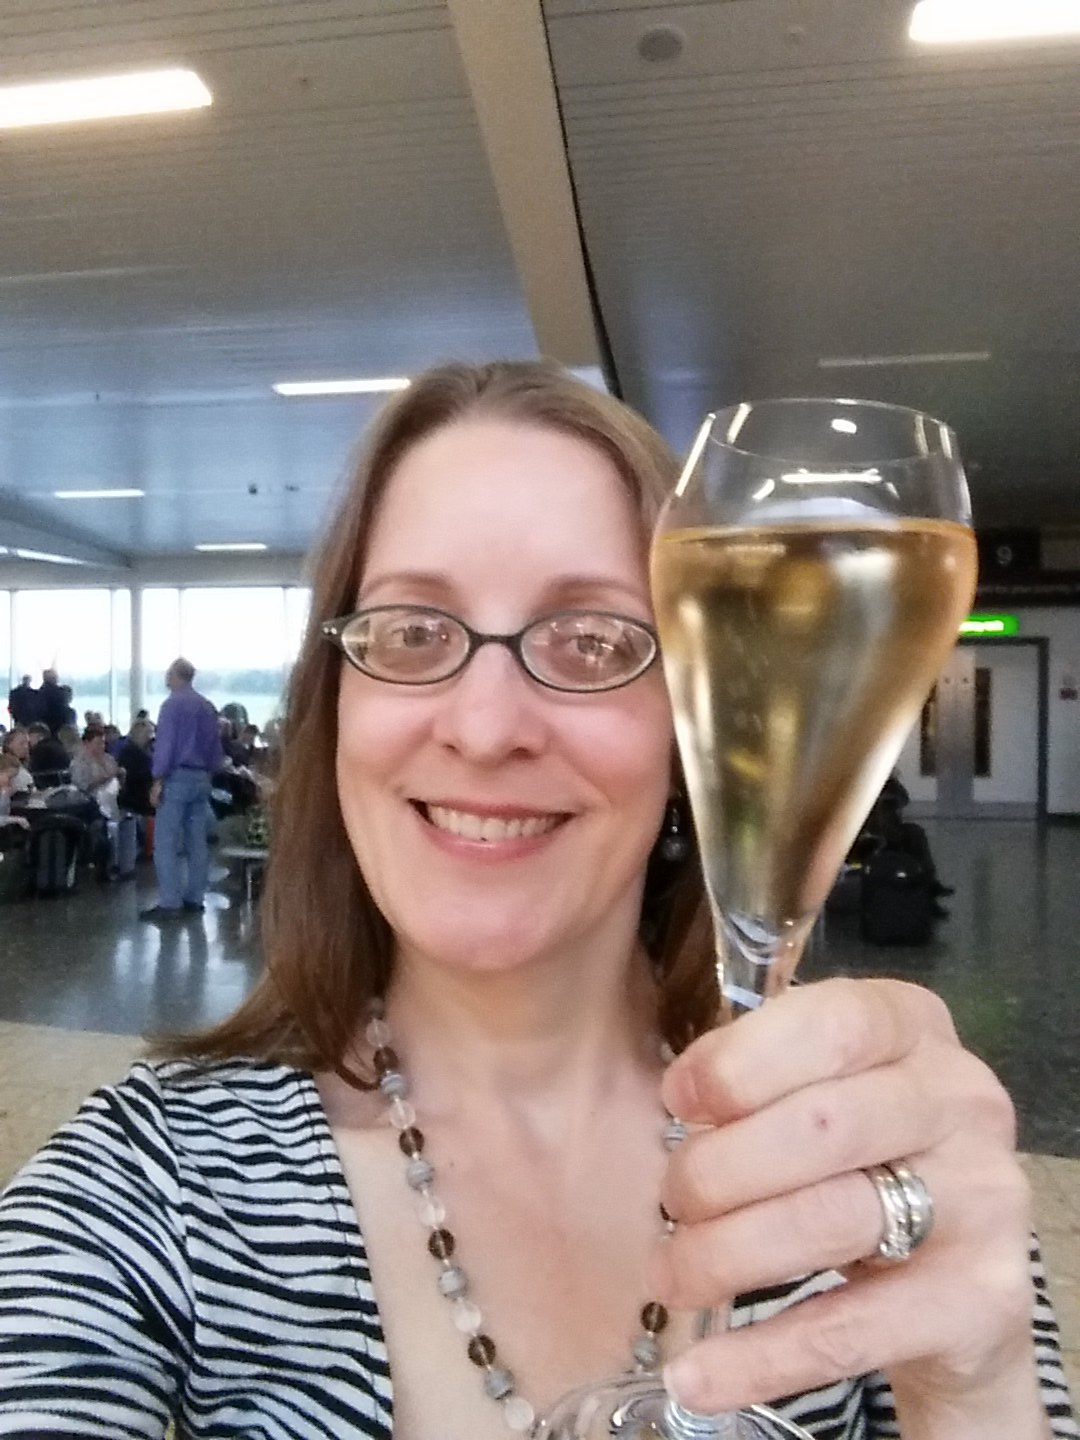 Pre-flight champagne. It's my new travel tradition! https://t.co/eC0x69E9pU